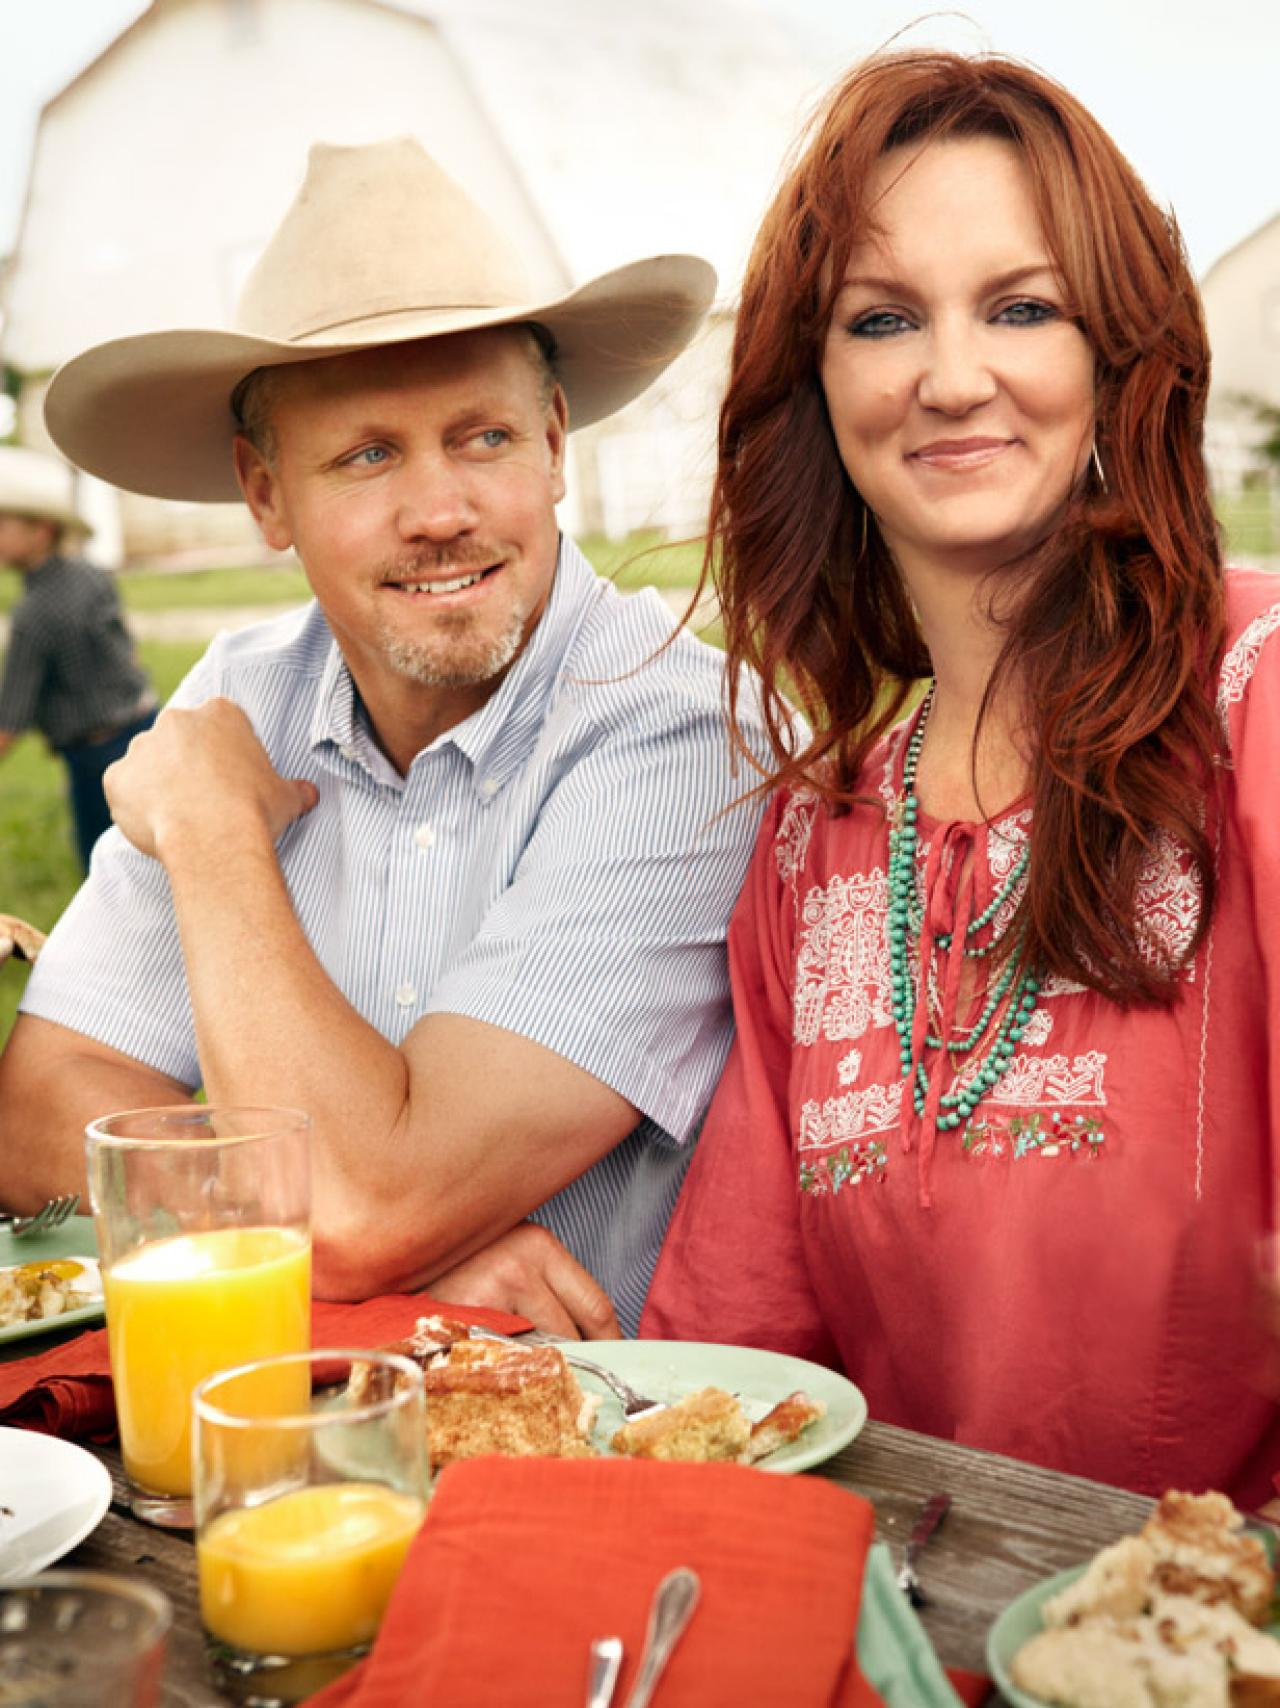 The Kitchen Food Network A Pioneer Breakfast With Ree Drummond  Chefs  Food Network